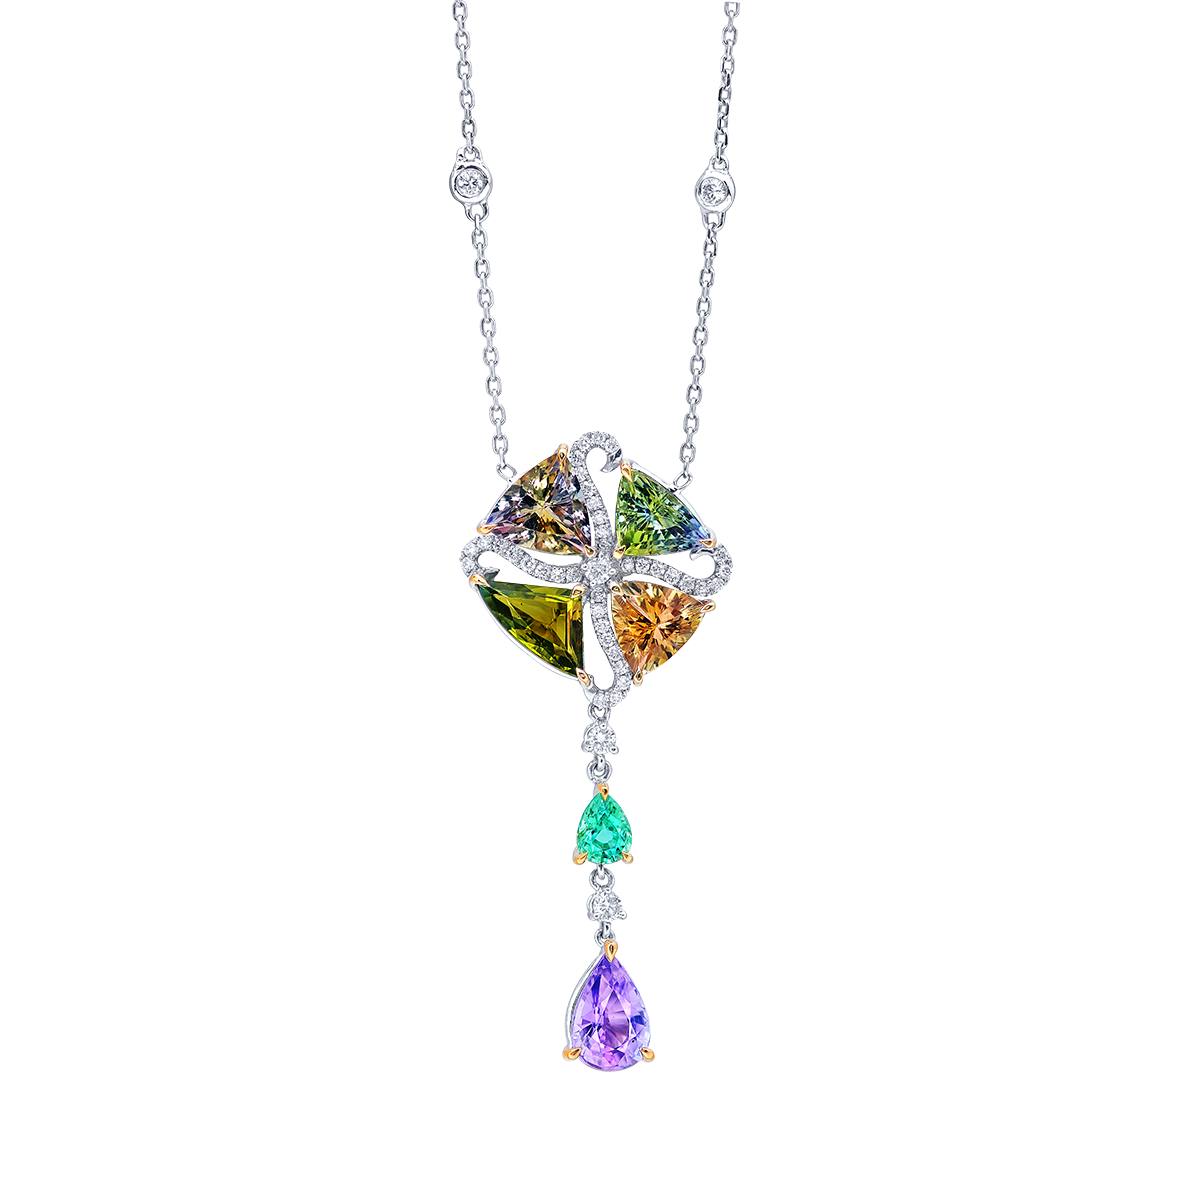 4.25克拉 混色丹泉石套鍊